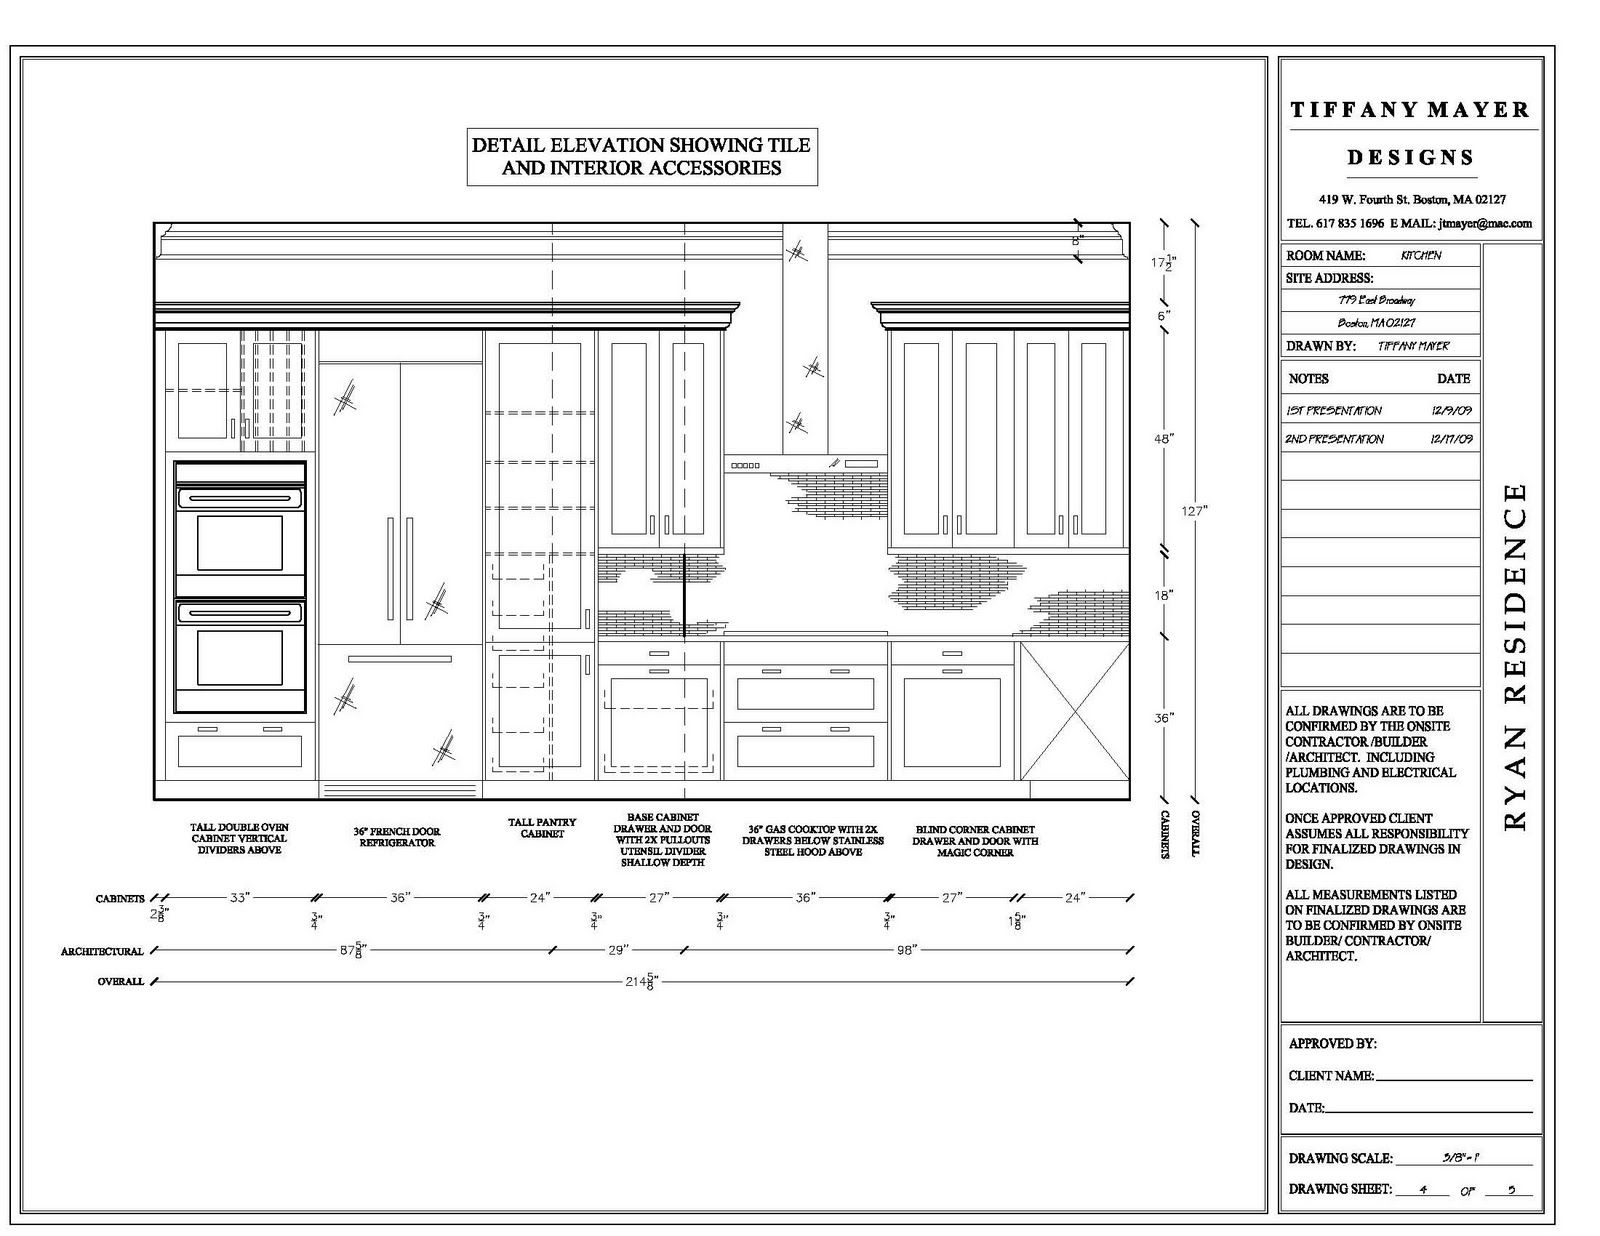 detail drawing size interior design elevation drawings ...